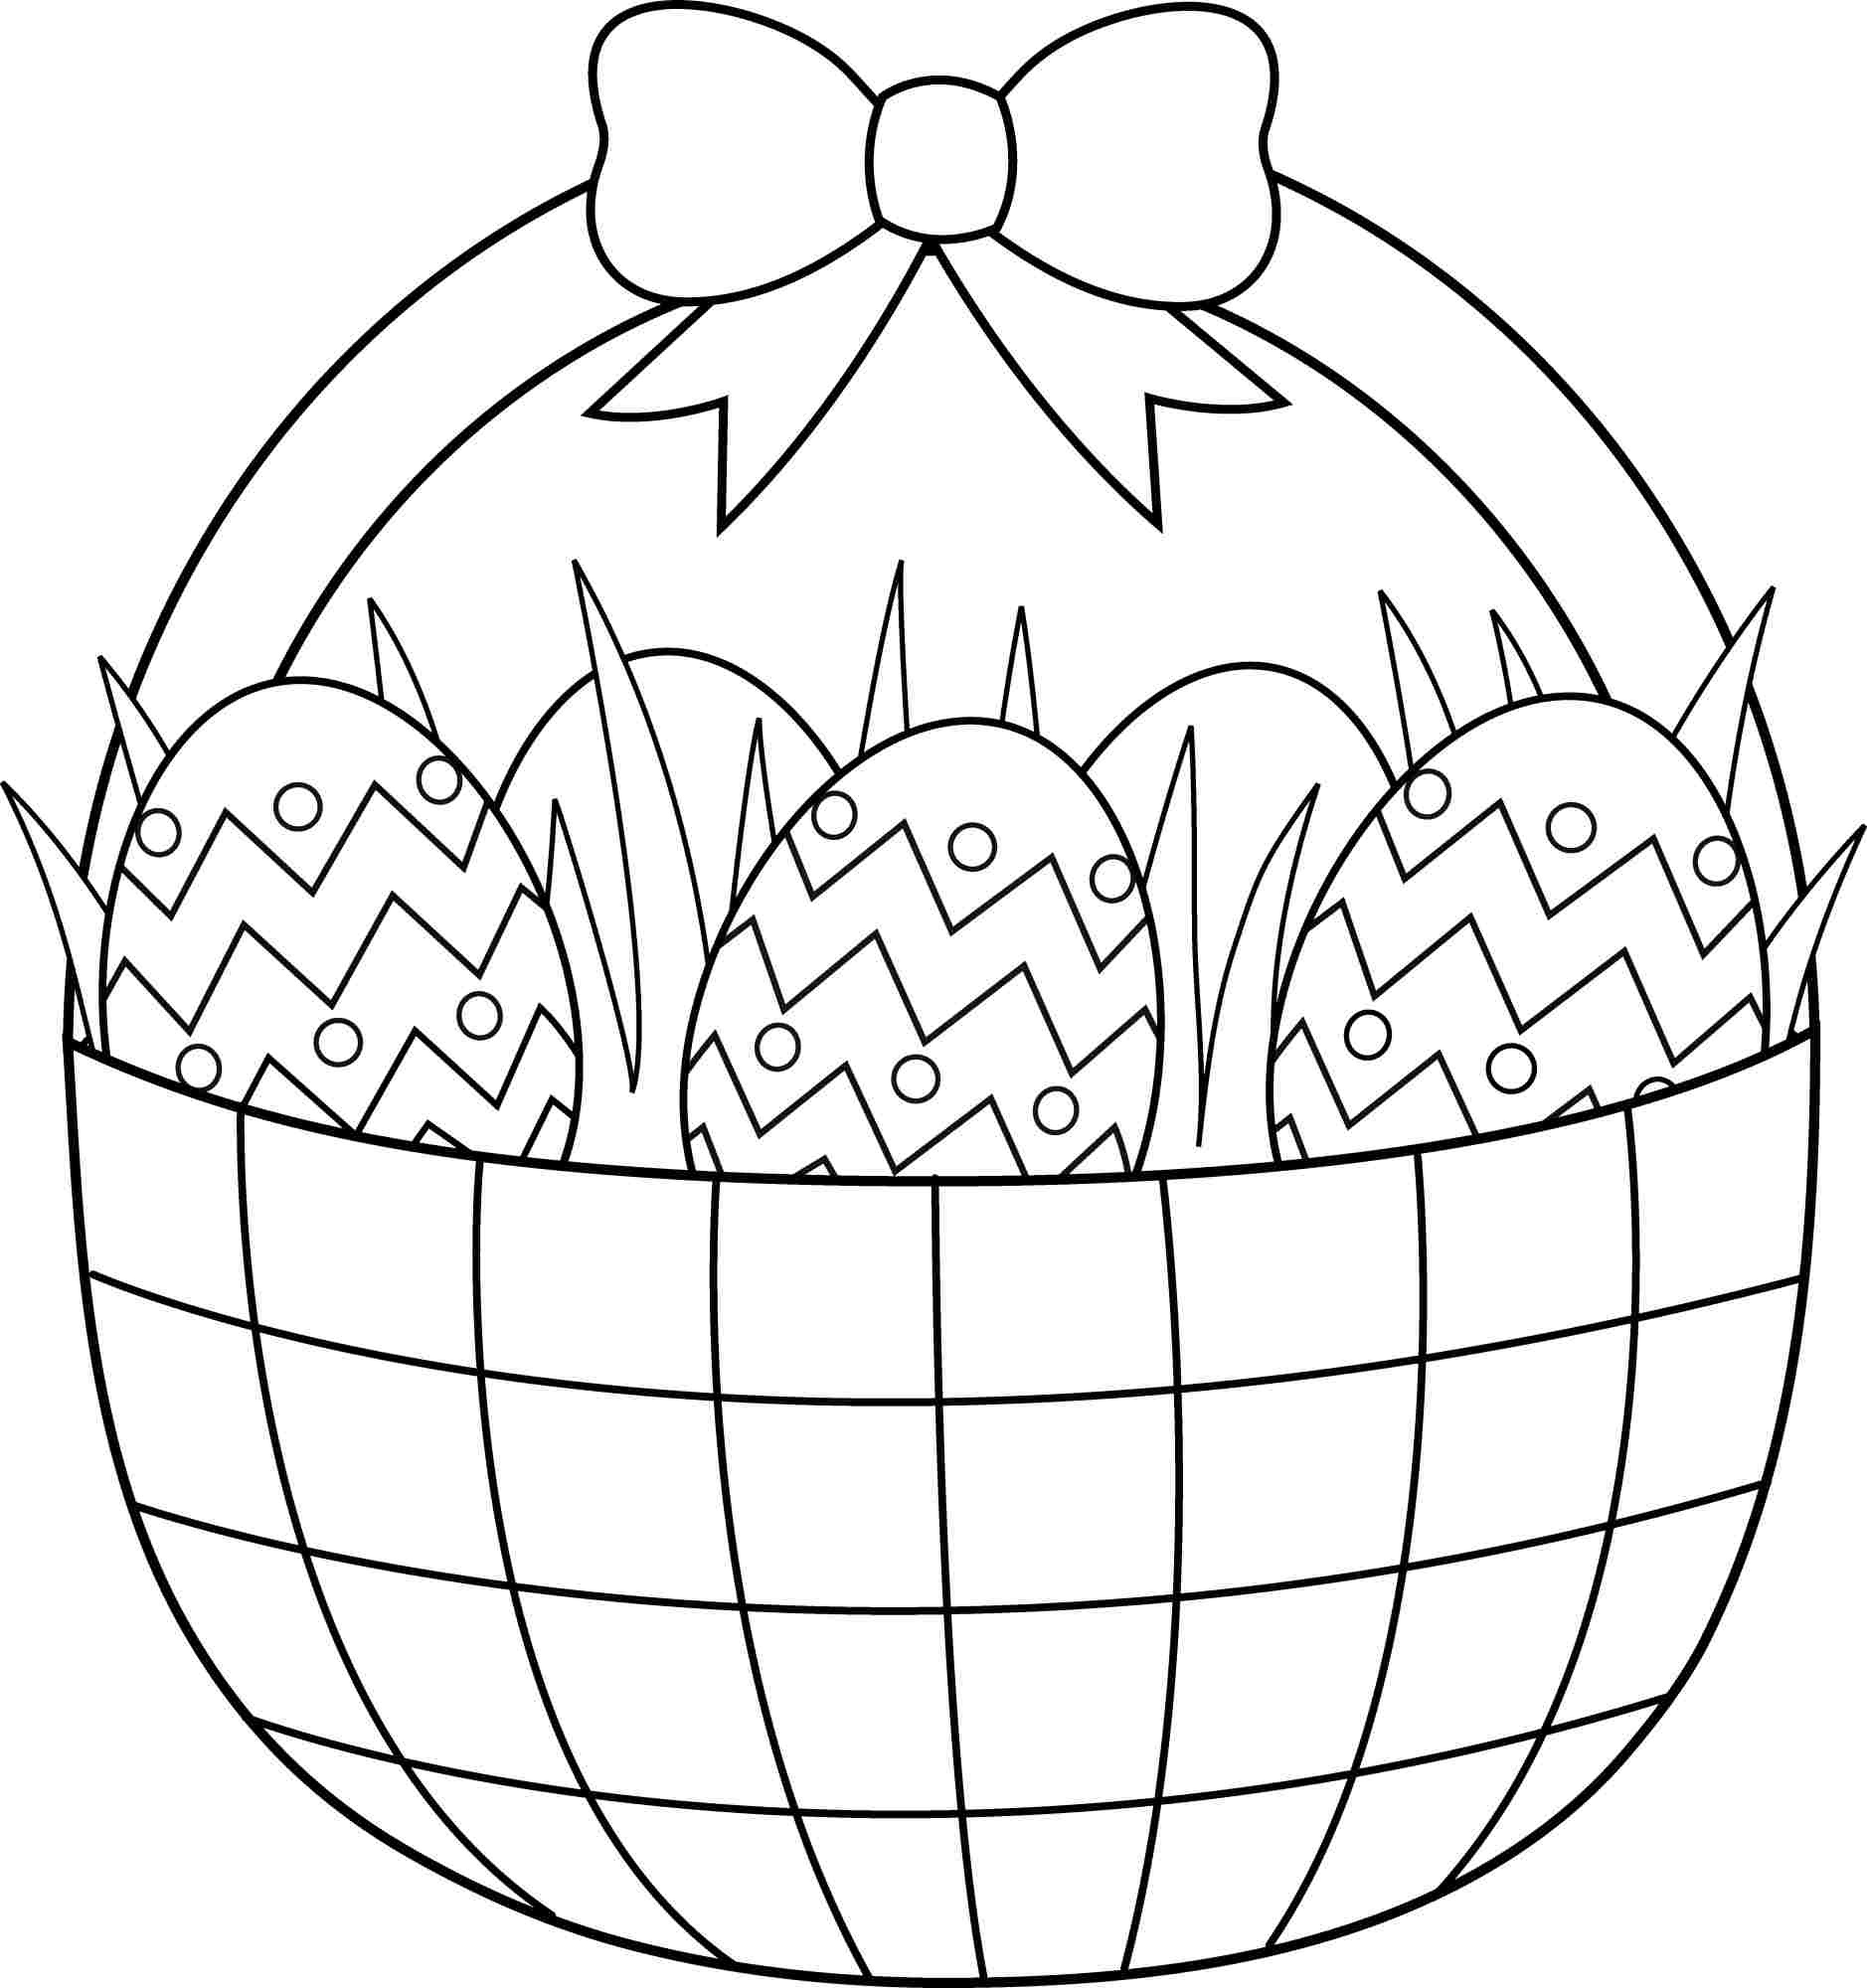 Printable Easter Coloring Pages Free Easter Coloring Pages Printable - Coloring Pages Free Printable Easter